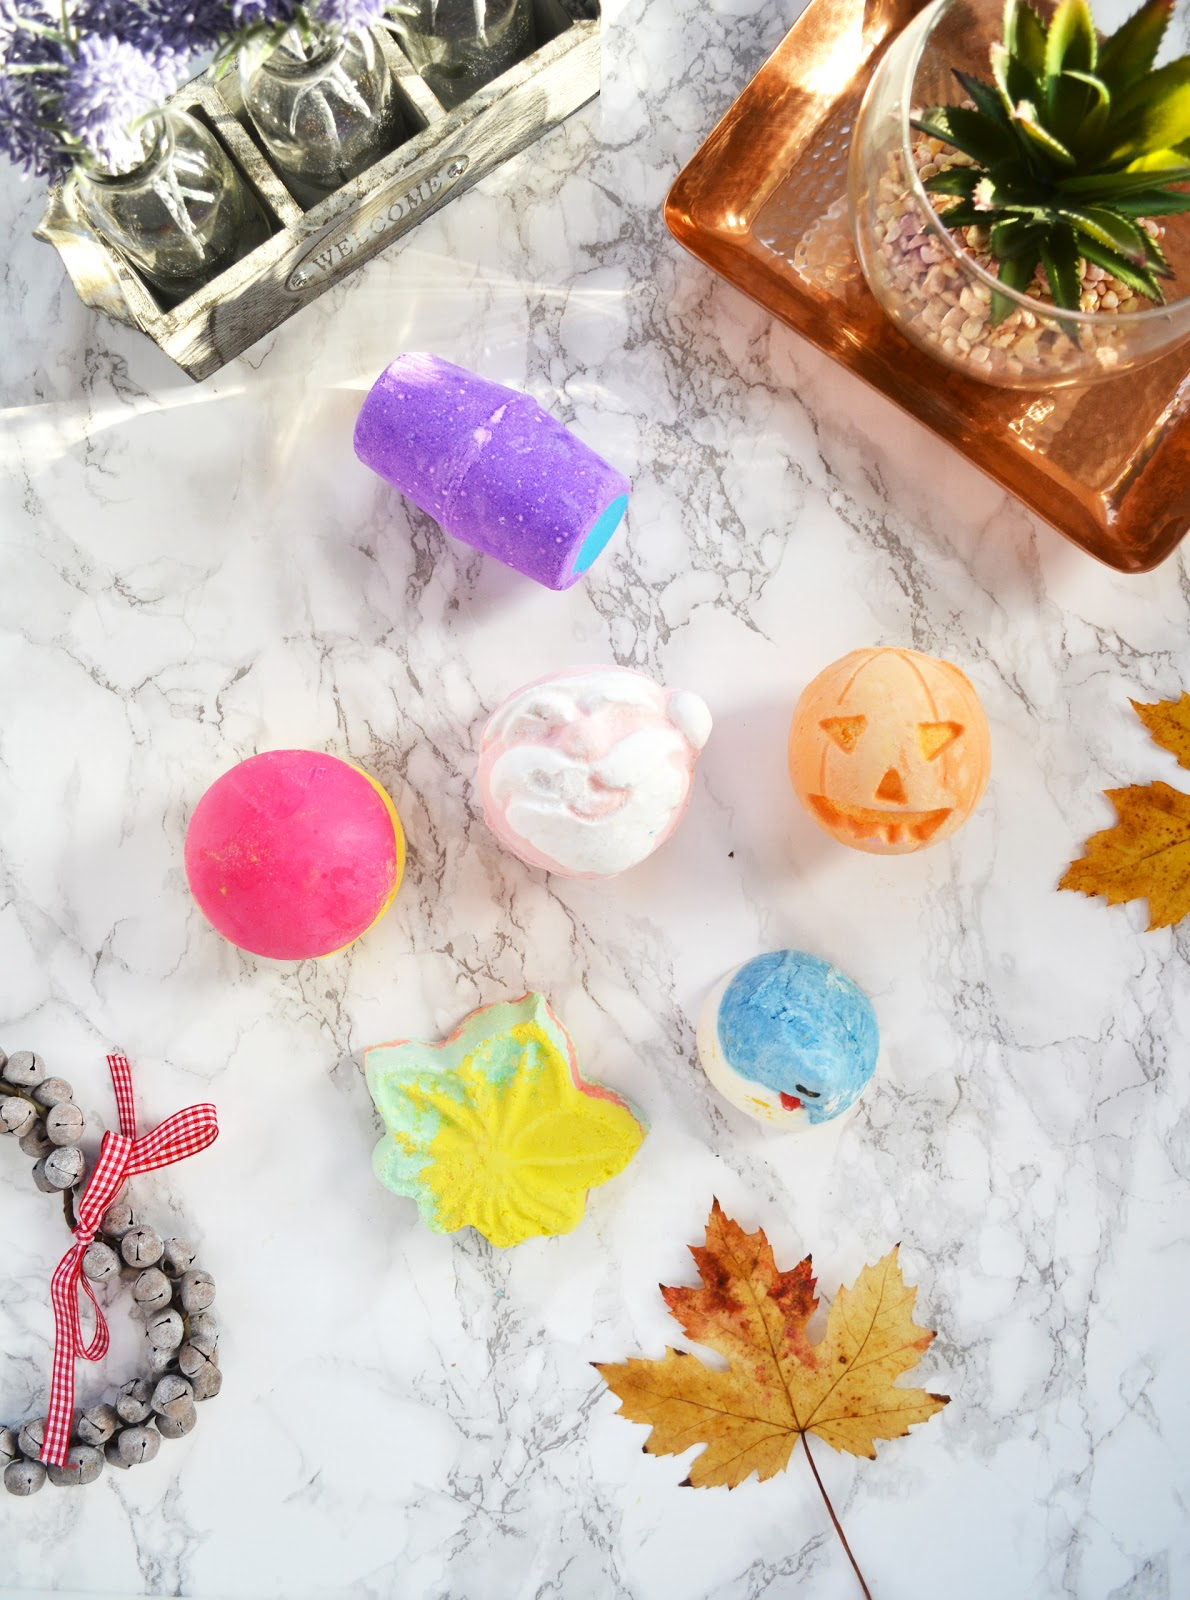 Autumn Winter Lush Haul